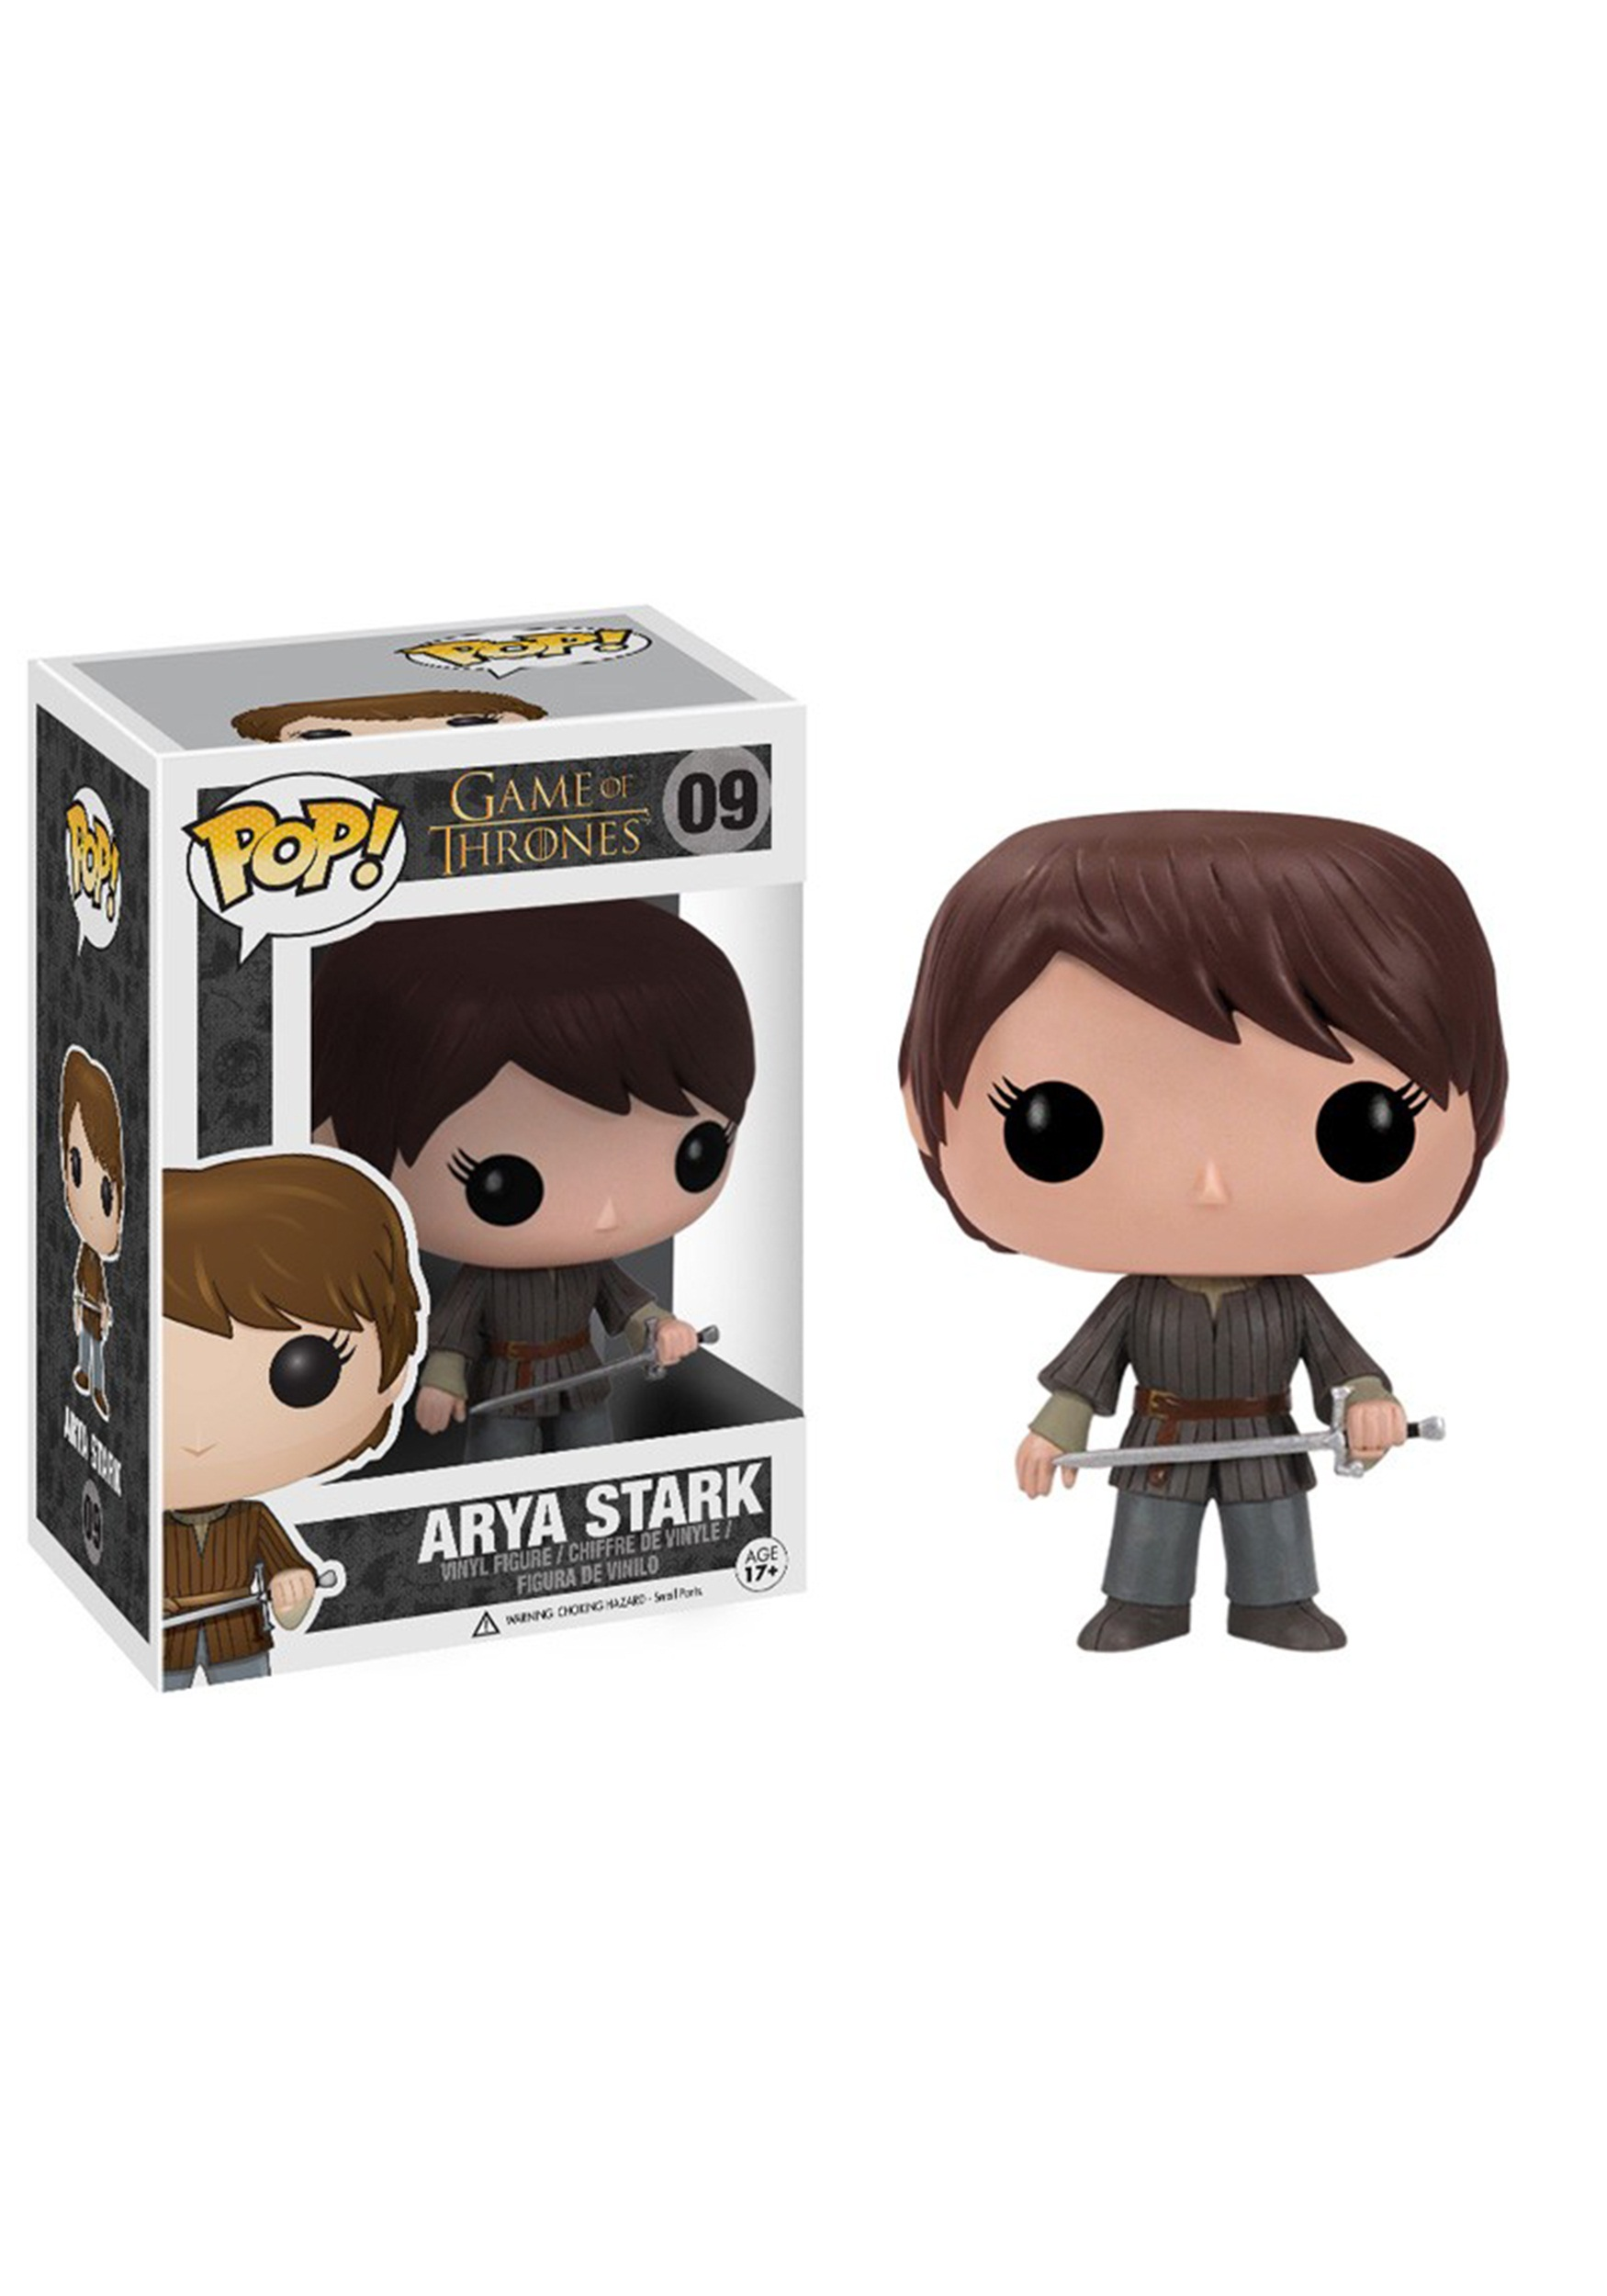 POP Game of Thrones Arya Stark Vinyl Figure FN3089